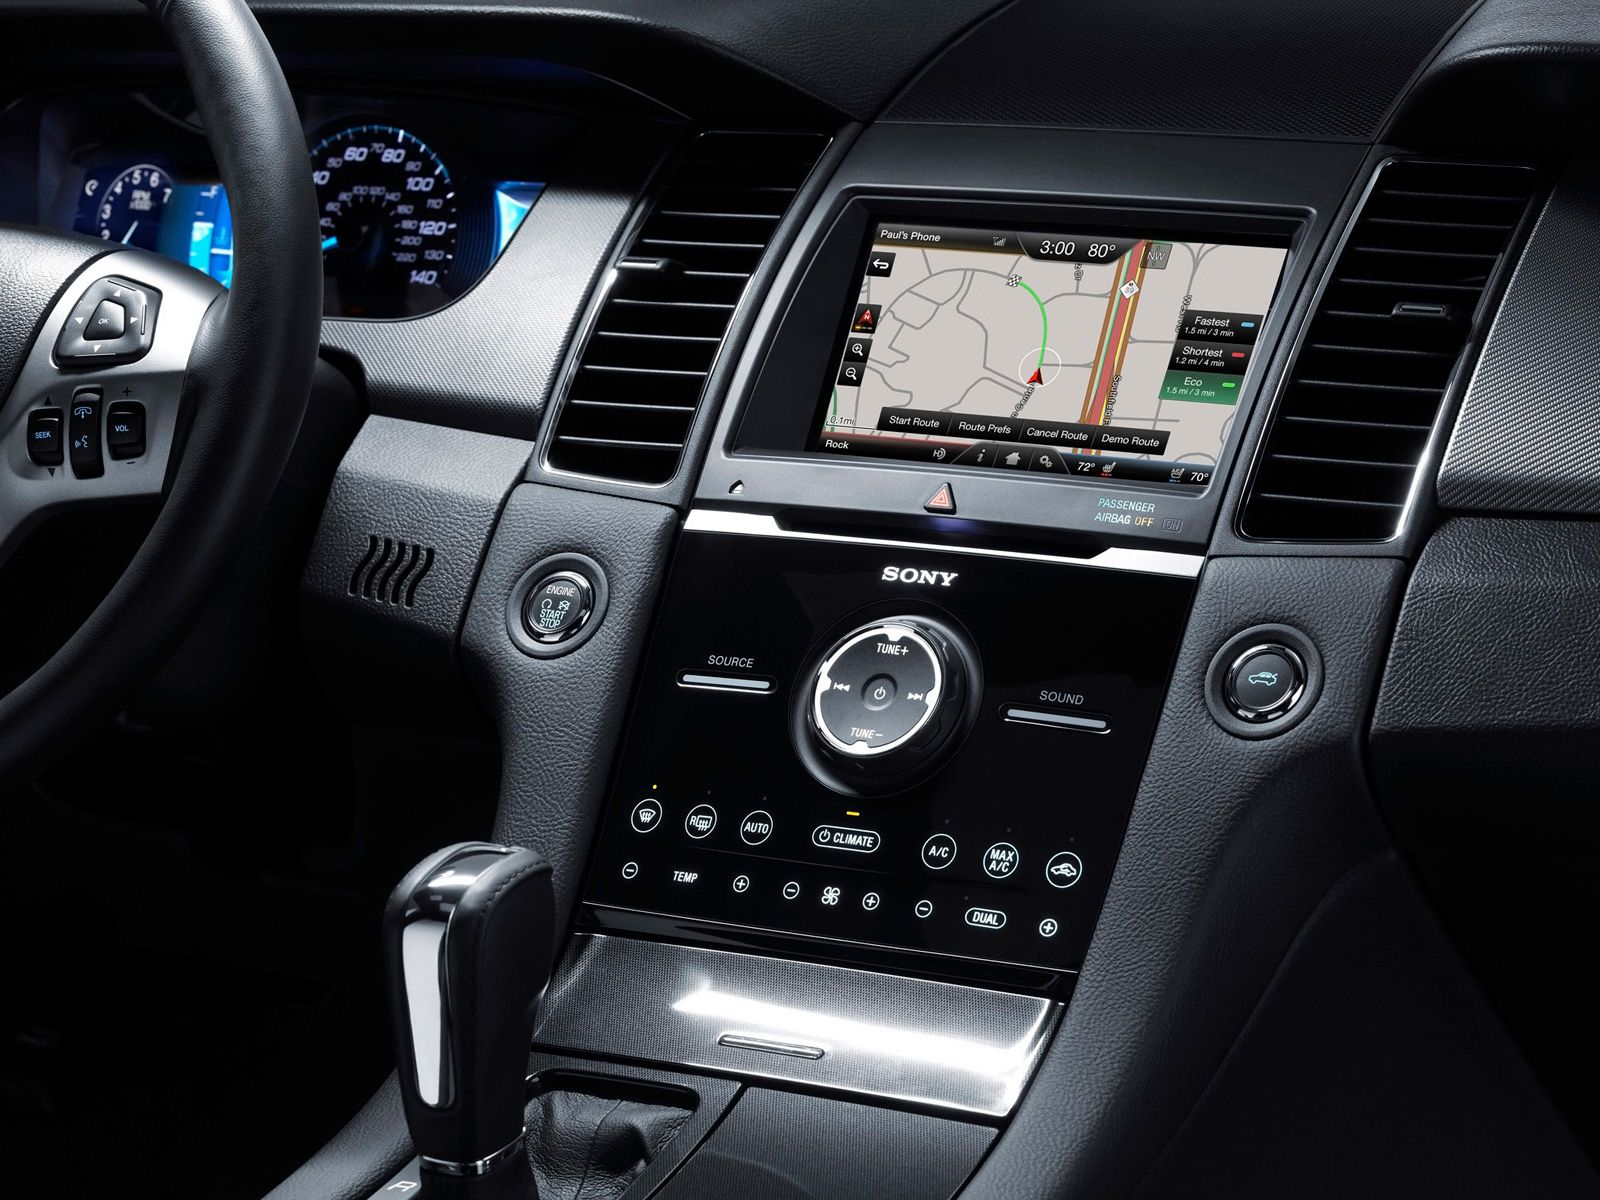 2015 ford taurus sho dashboard cool car design wallpaper. Black Bedroom Furniture Sets. Home Design Ideas